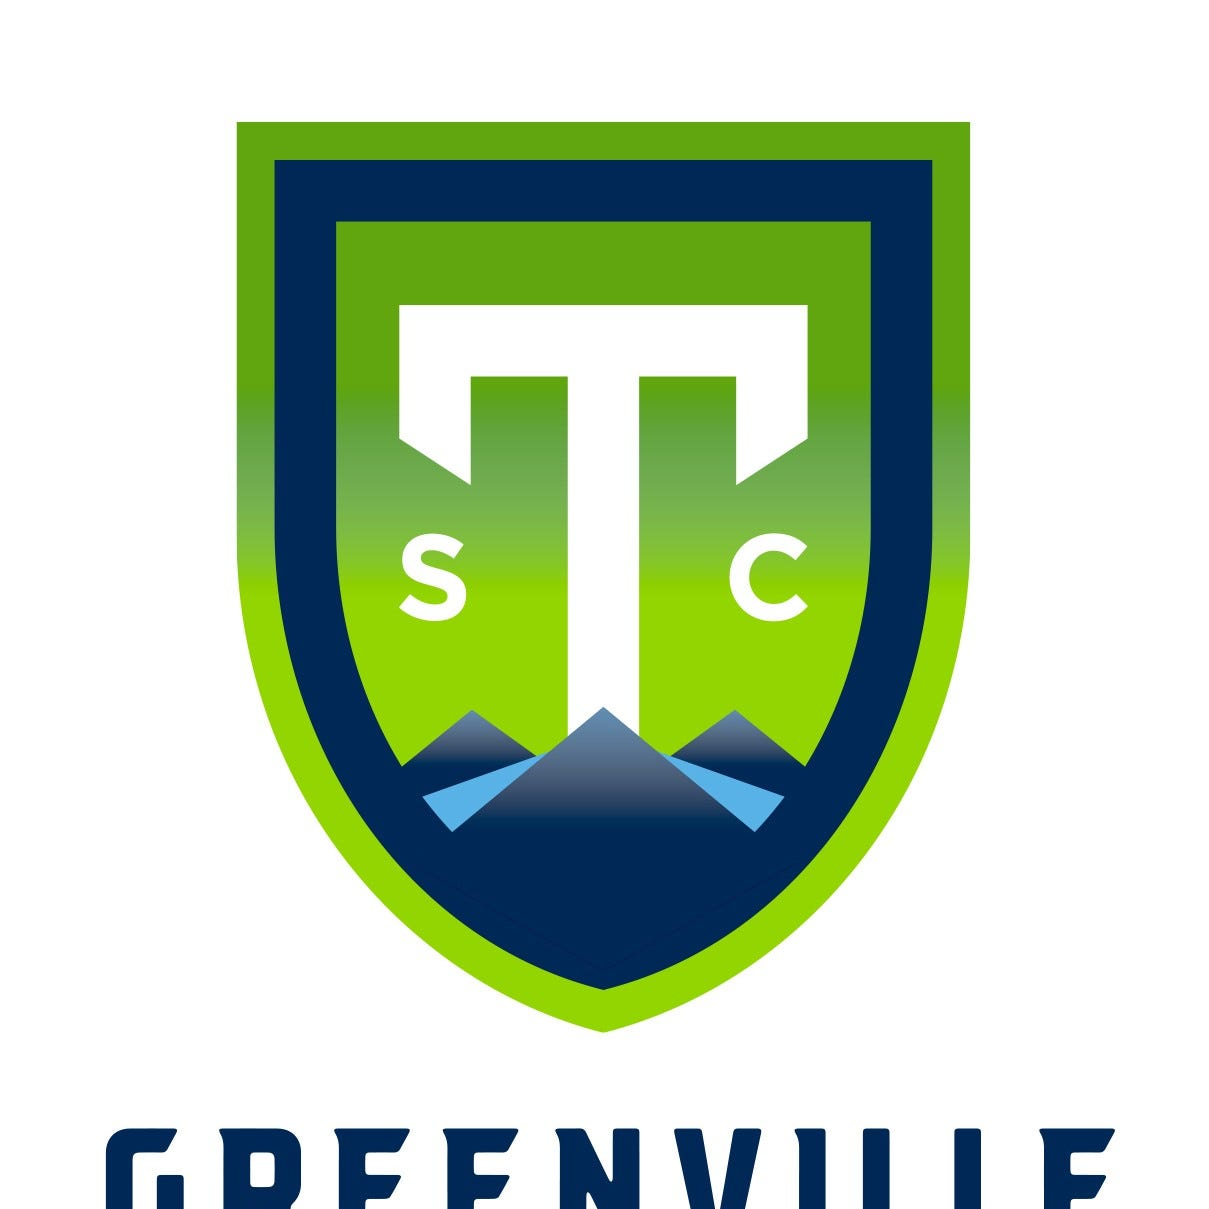 Greenville pro soccer team has a name and colors.